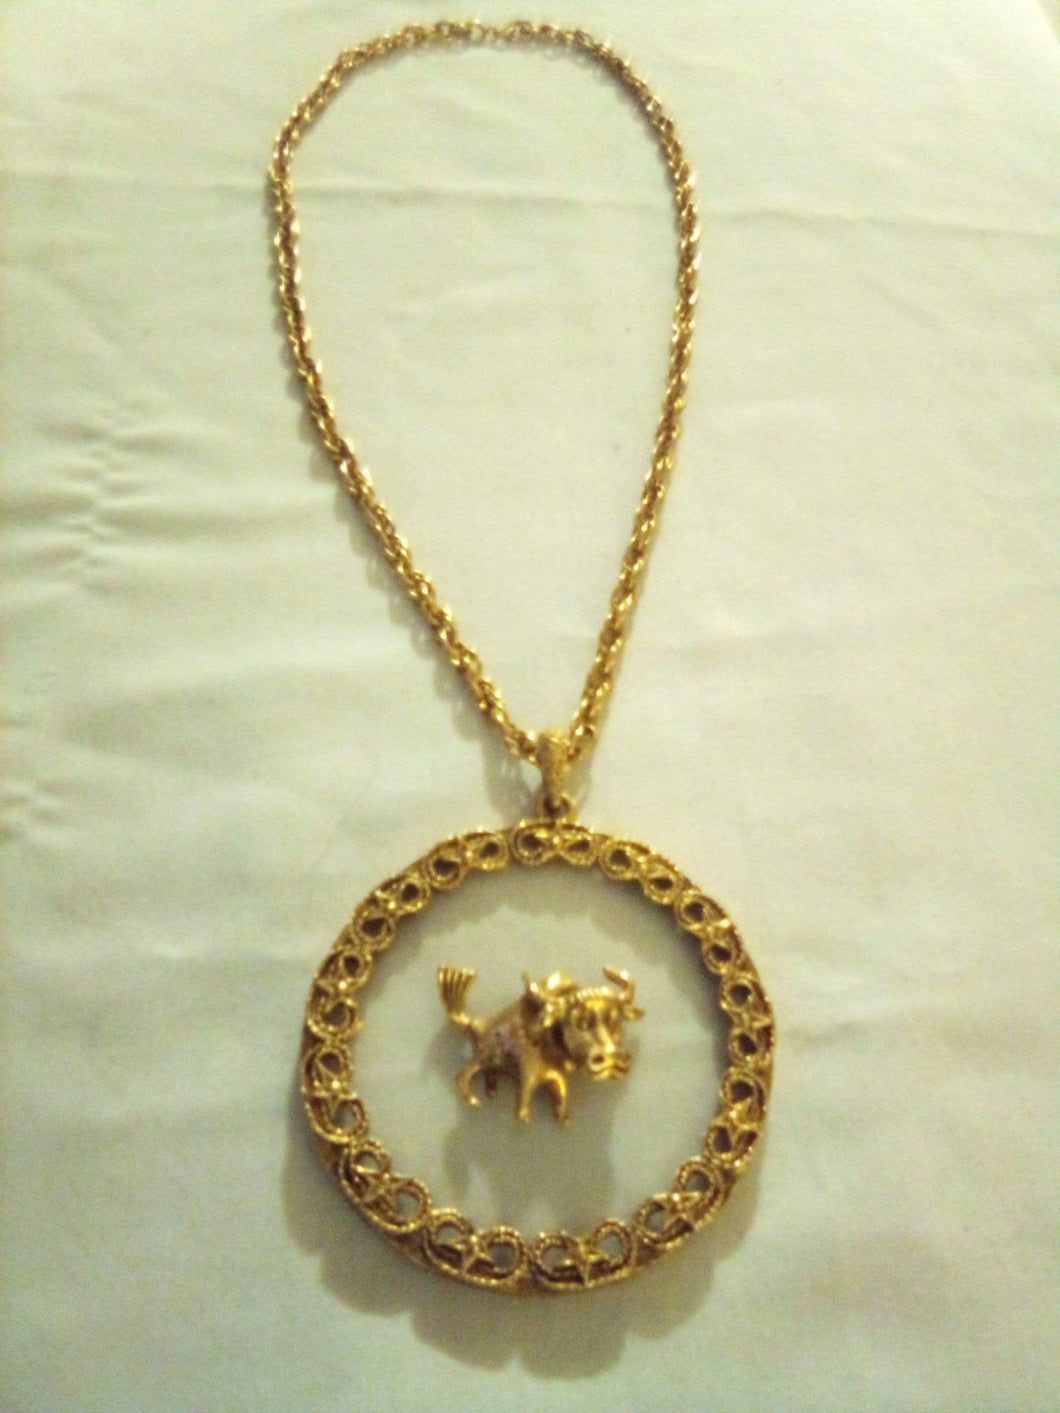 A gold tone chain with pendent - B&P'sringsnthings